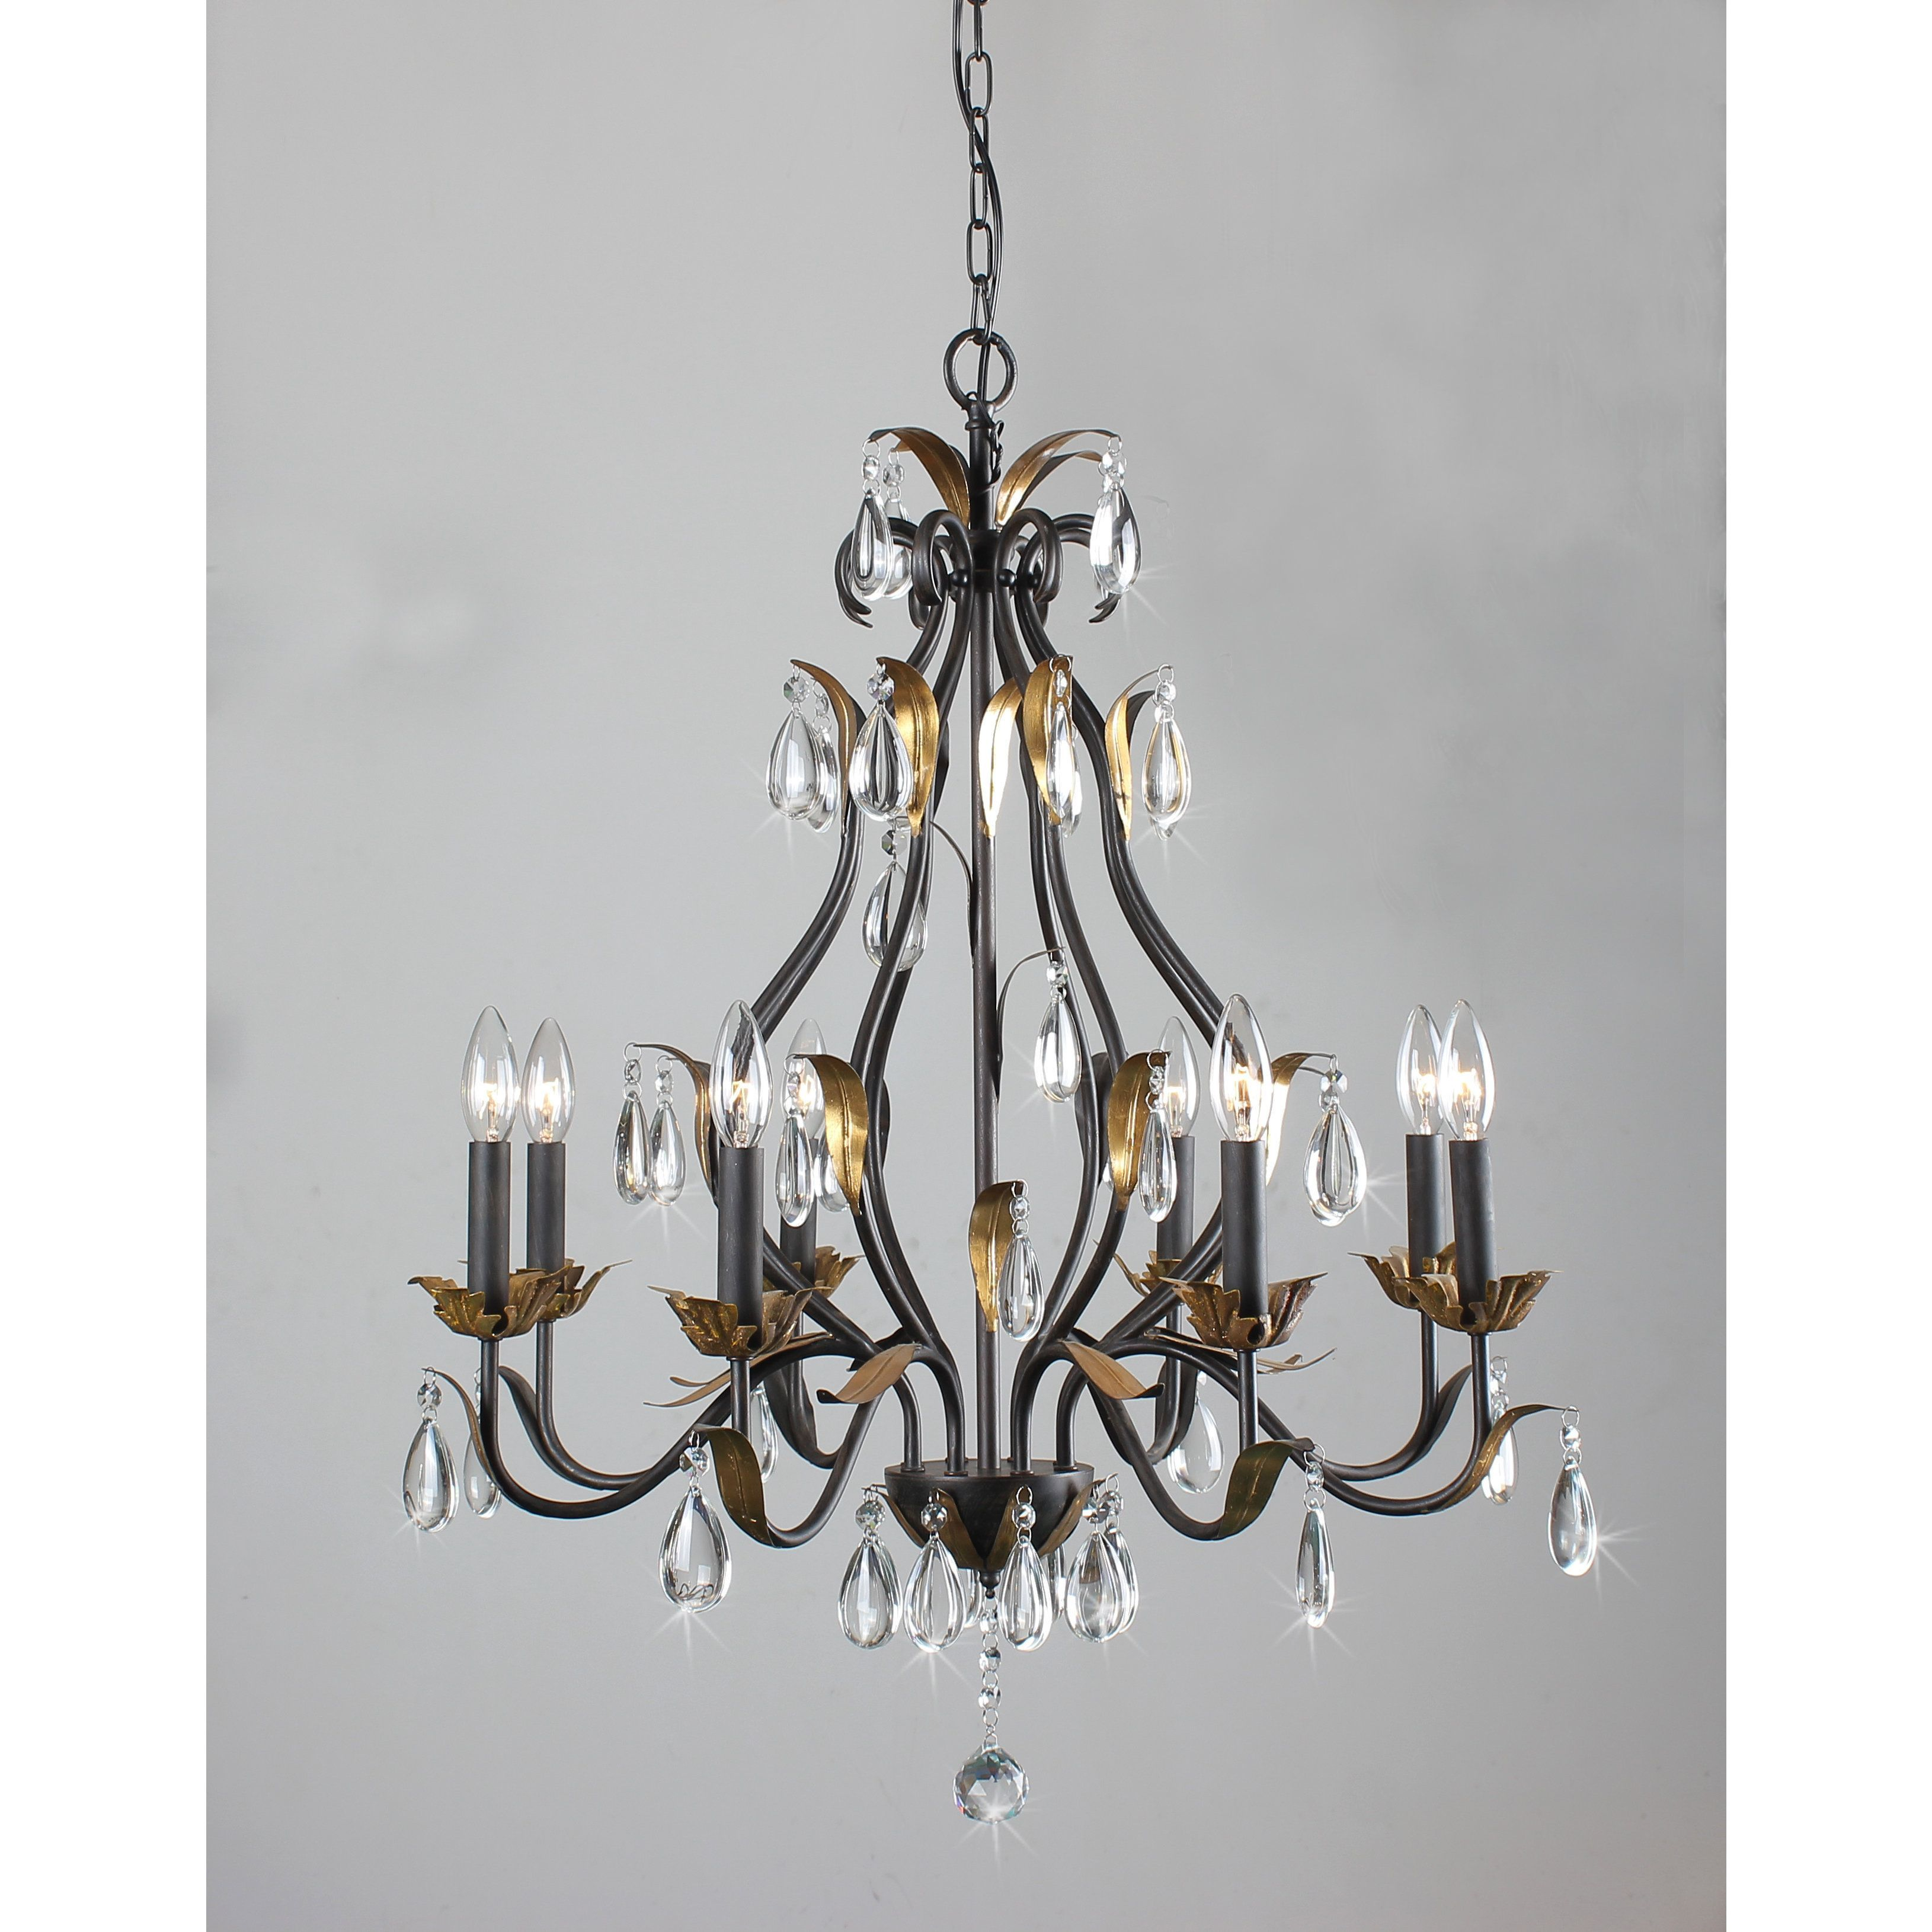 First Lighting Juno 8 Light Antique Bronze Candelabra Chandelier